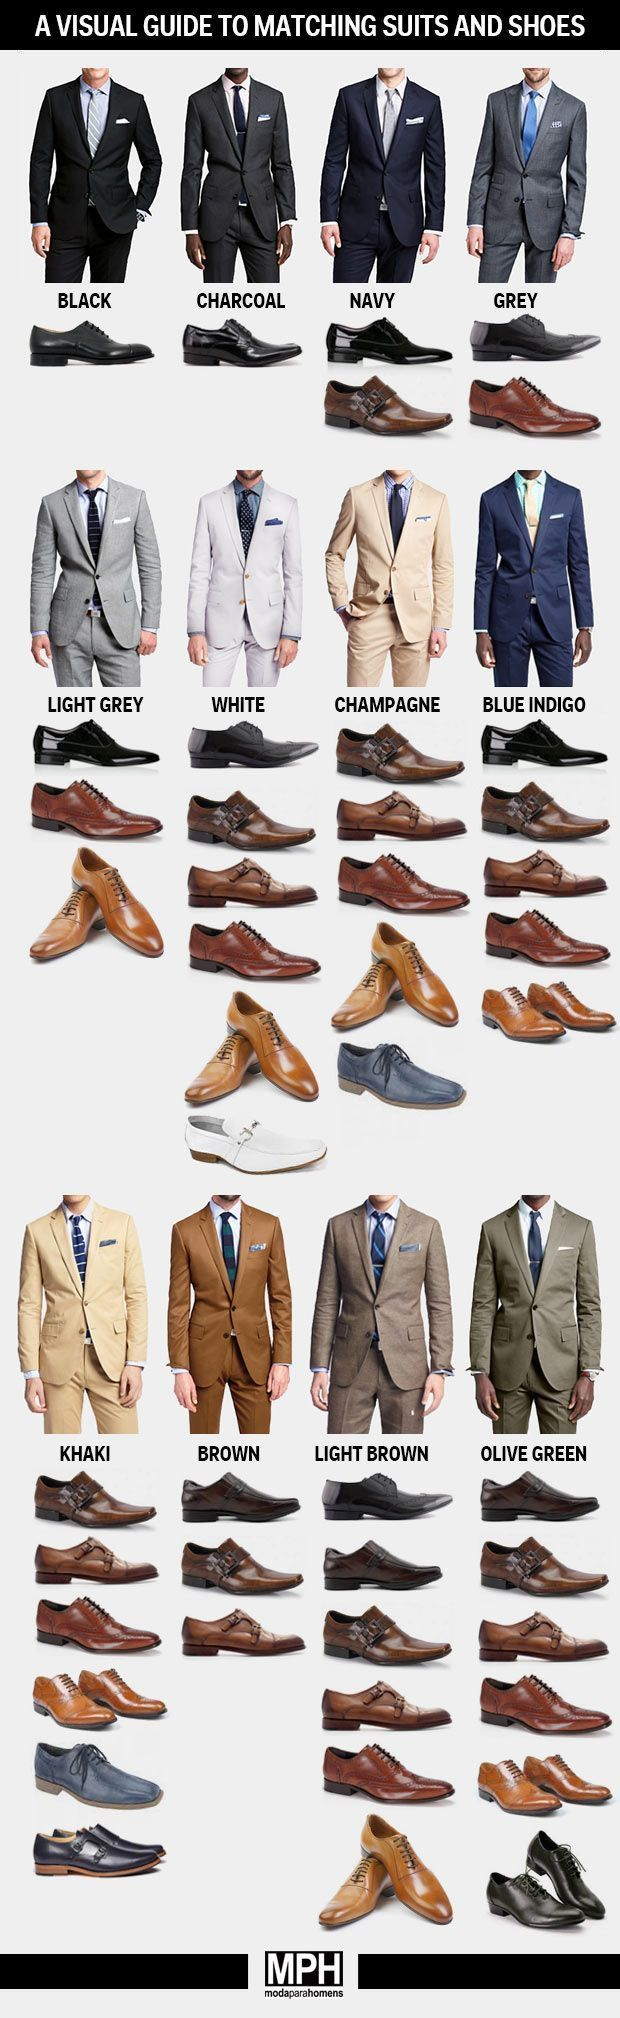 How to pick the perfect pair of shoes for every color suit Read more: http://www.businessinsider.com/how-to-pick-shoes-for-every-color-suit-2015-5#ixzz3dUldEZNR